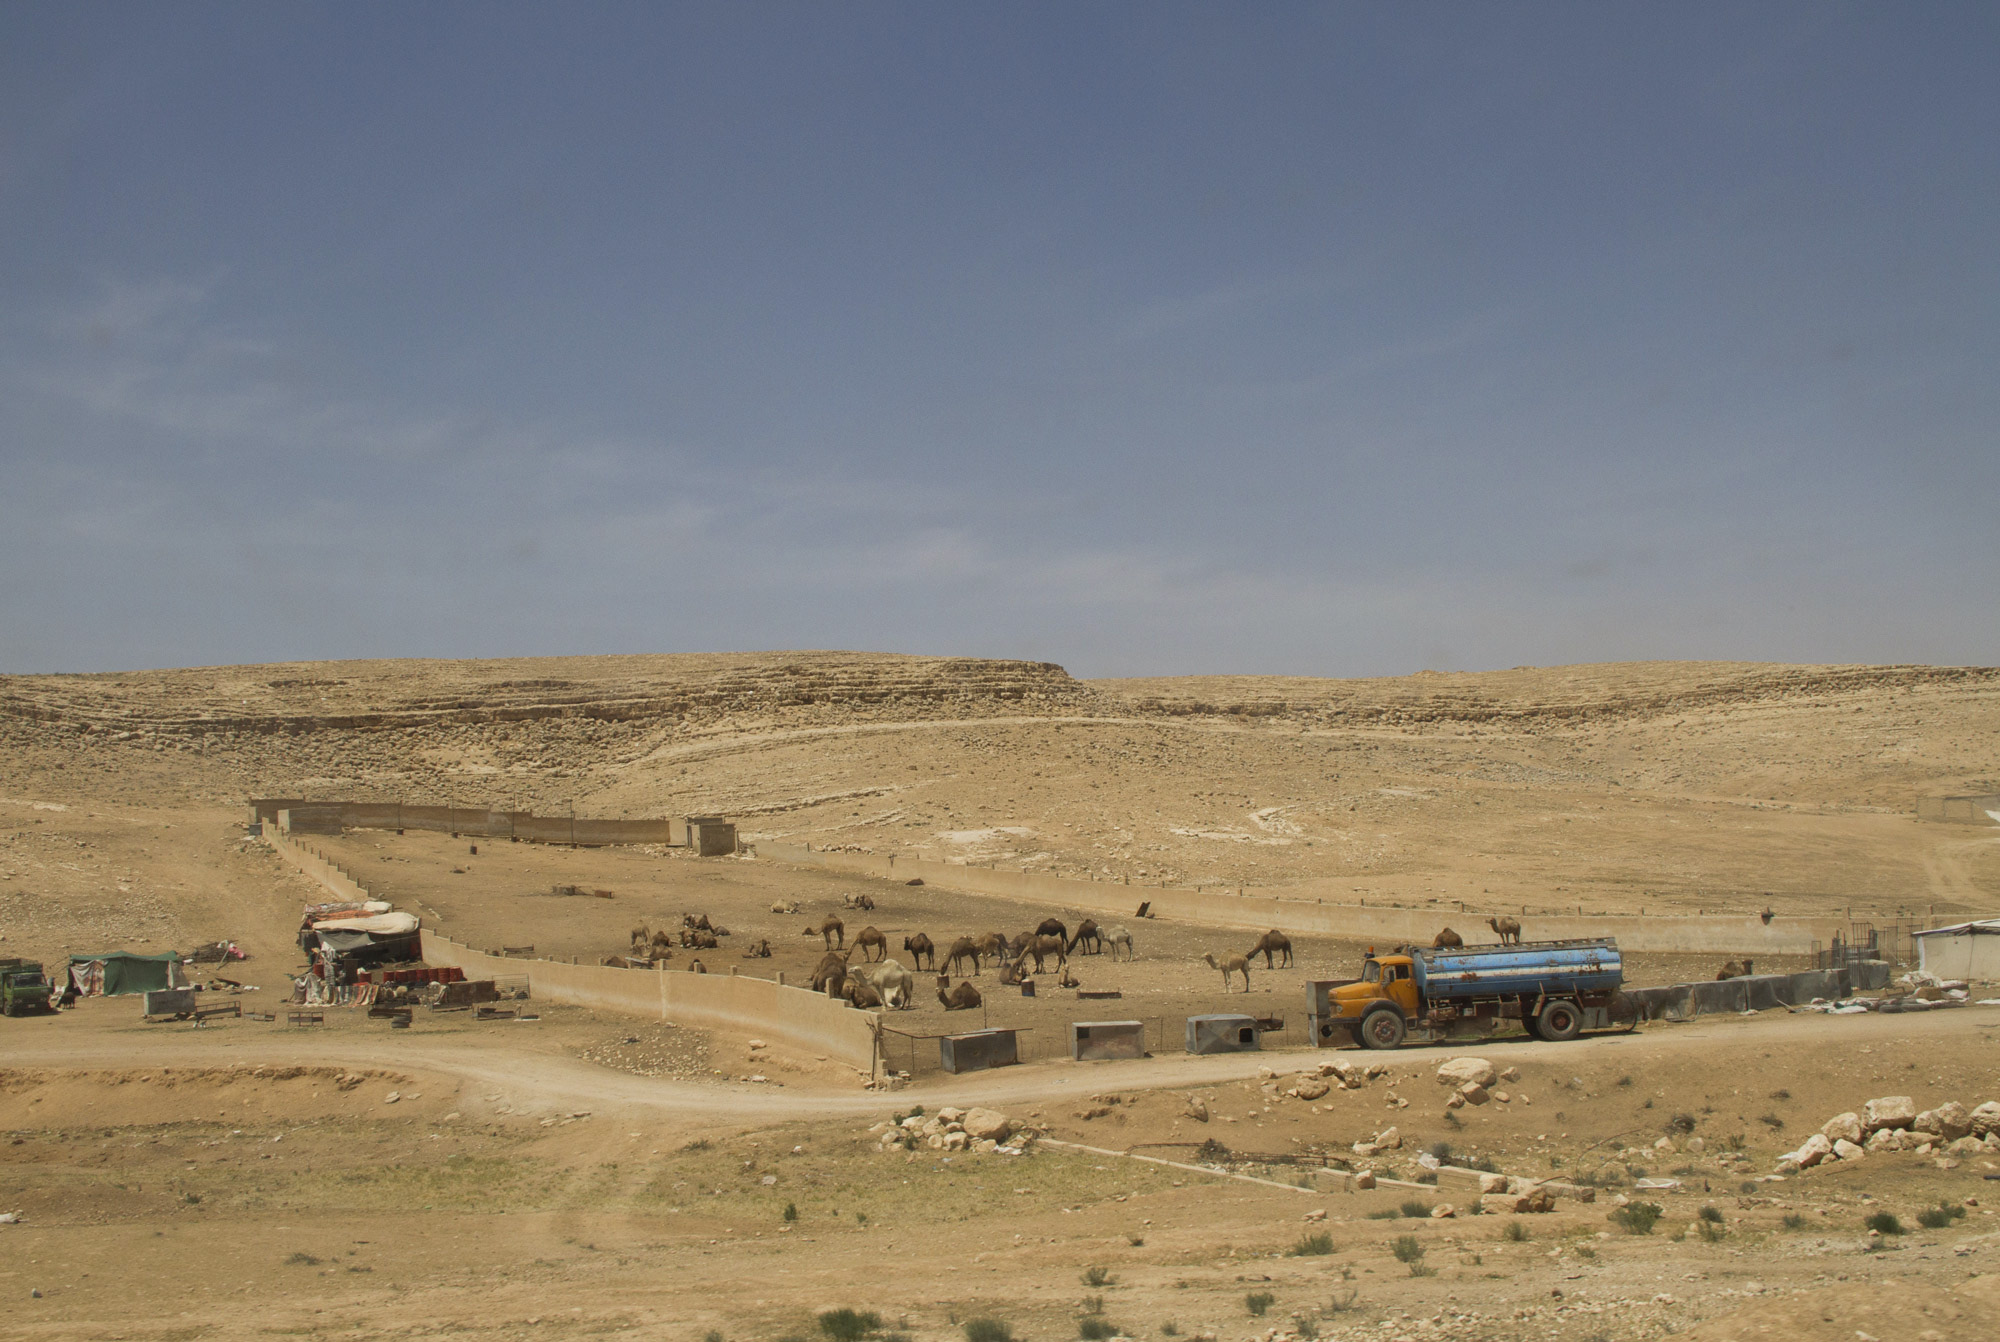 Jordan is a land of contrast: while on the one hand there are lush green hills, a few meters further is dusty and desolate desert.